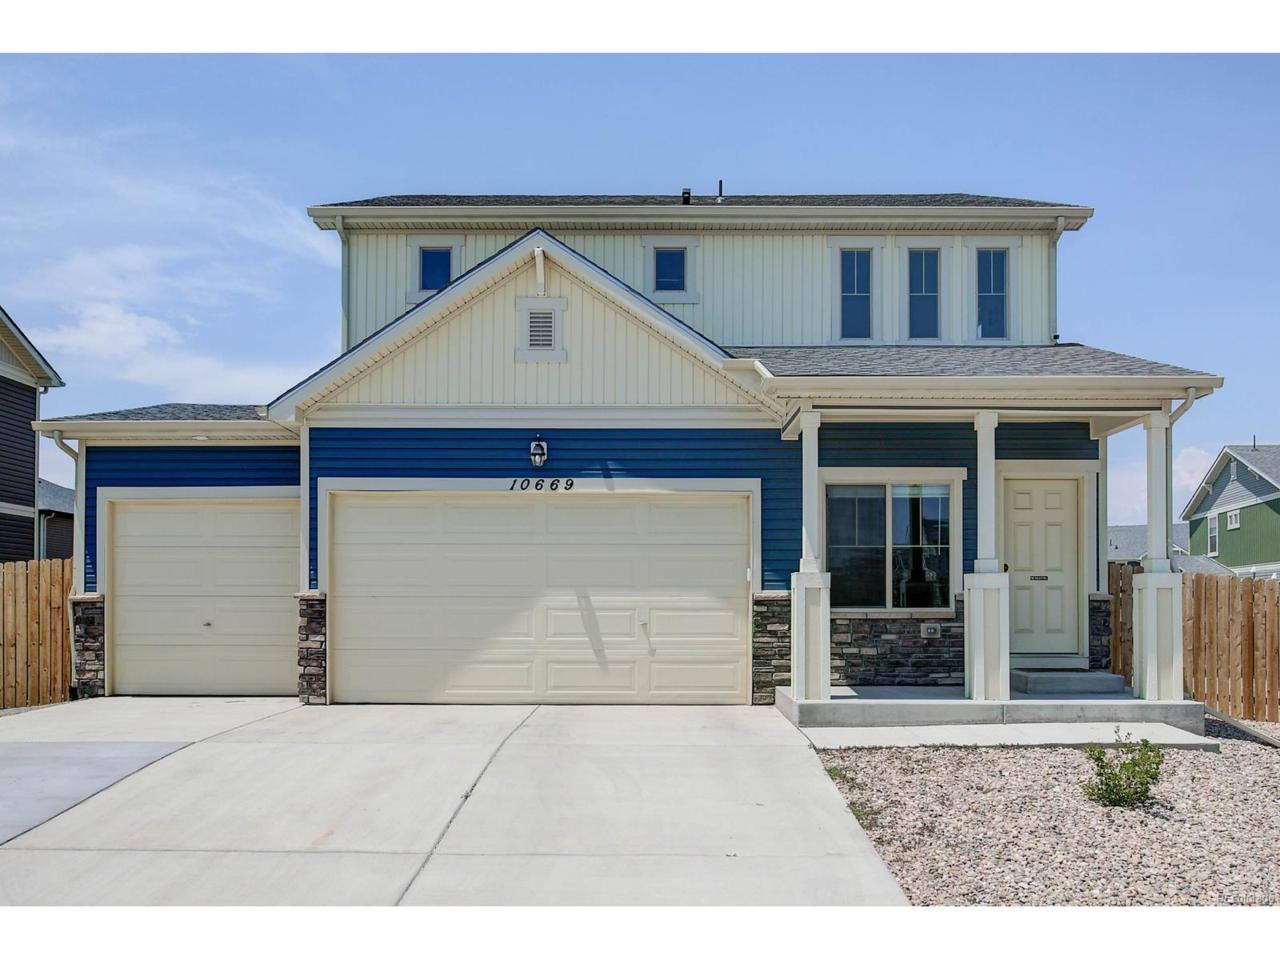 10669 Worchester Drive, Commerce City, CO 80022 (MLS #4972638) :: 8z Real Estate